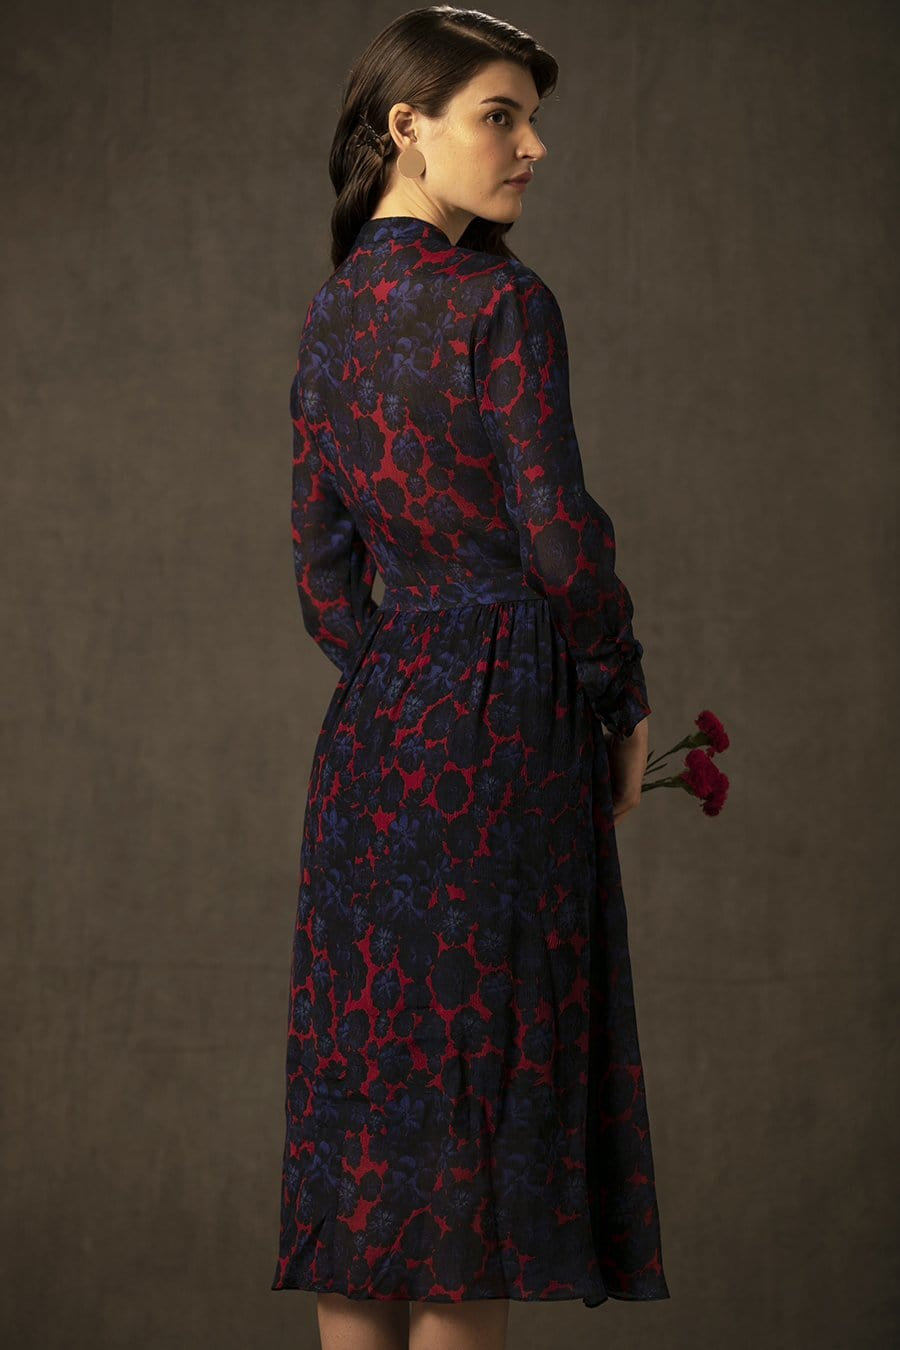 BIRDWALK CHIFFON FLORAL SHIRT DRESS